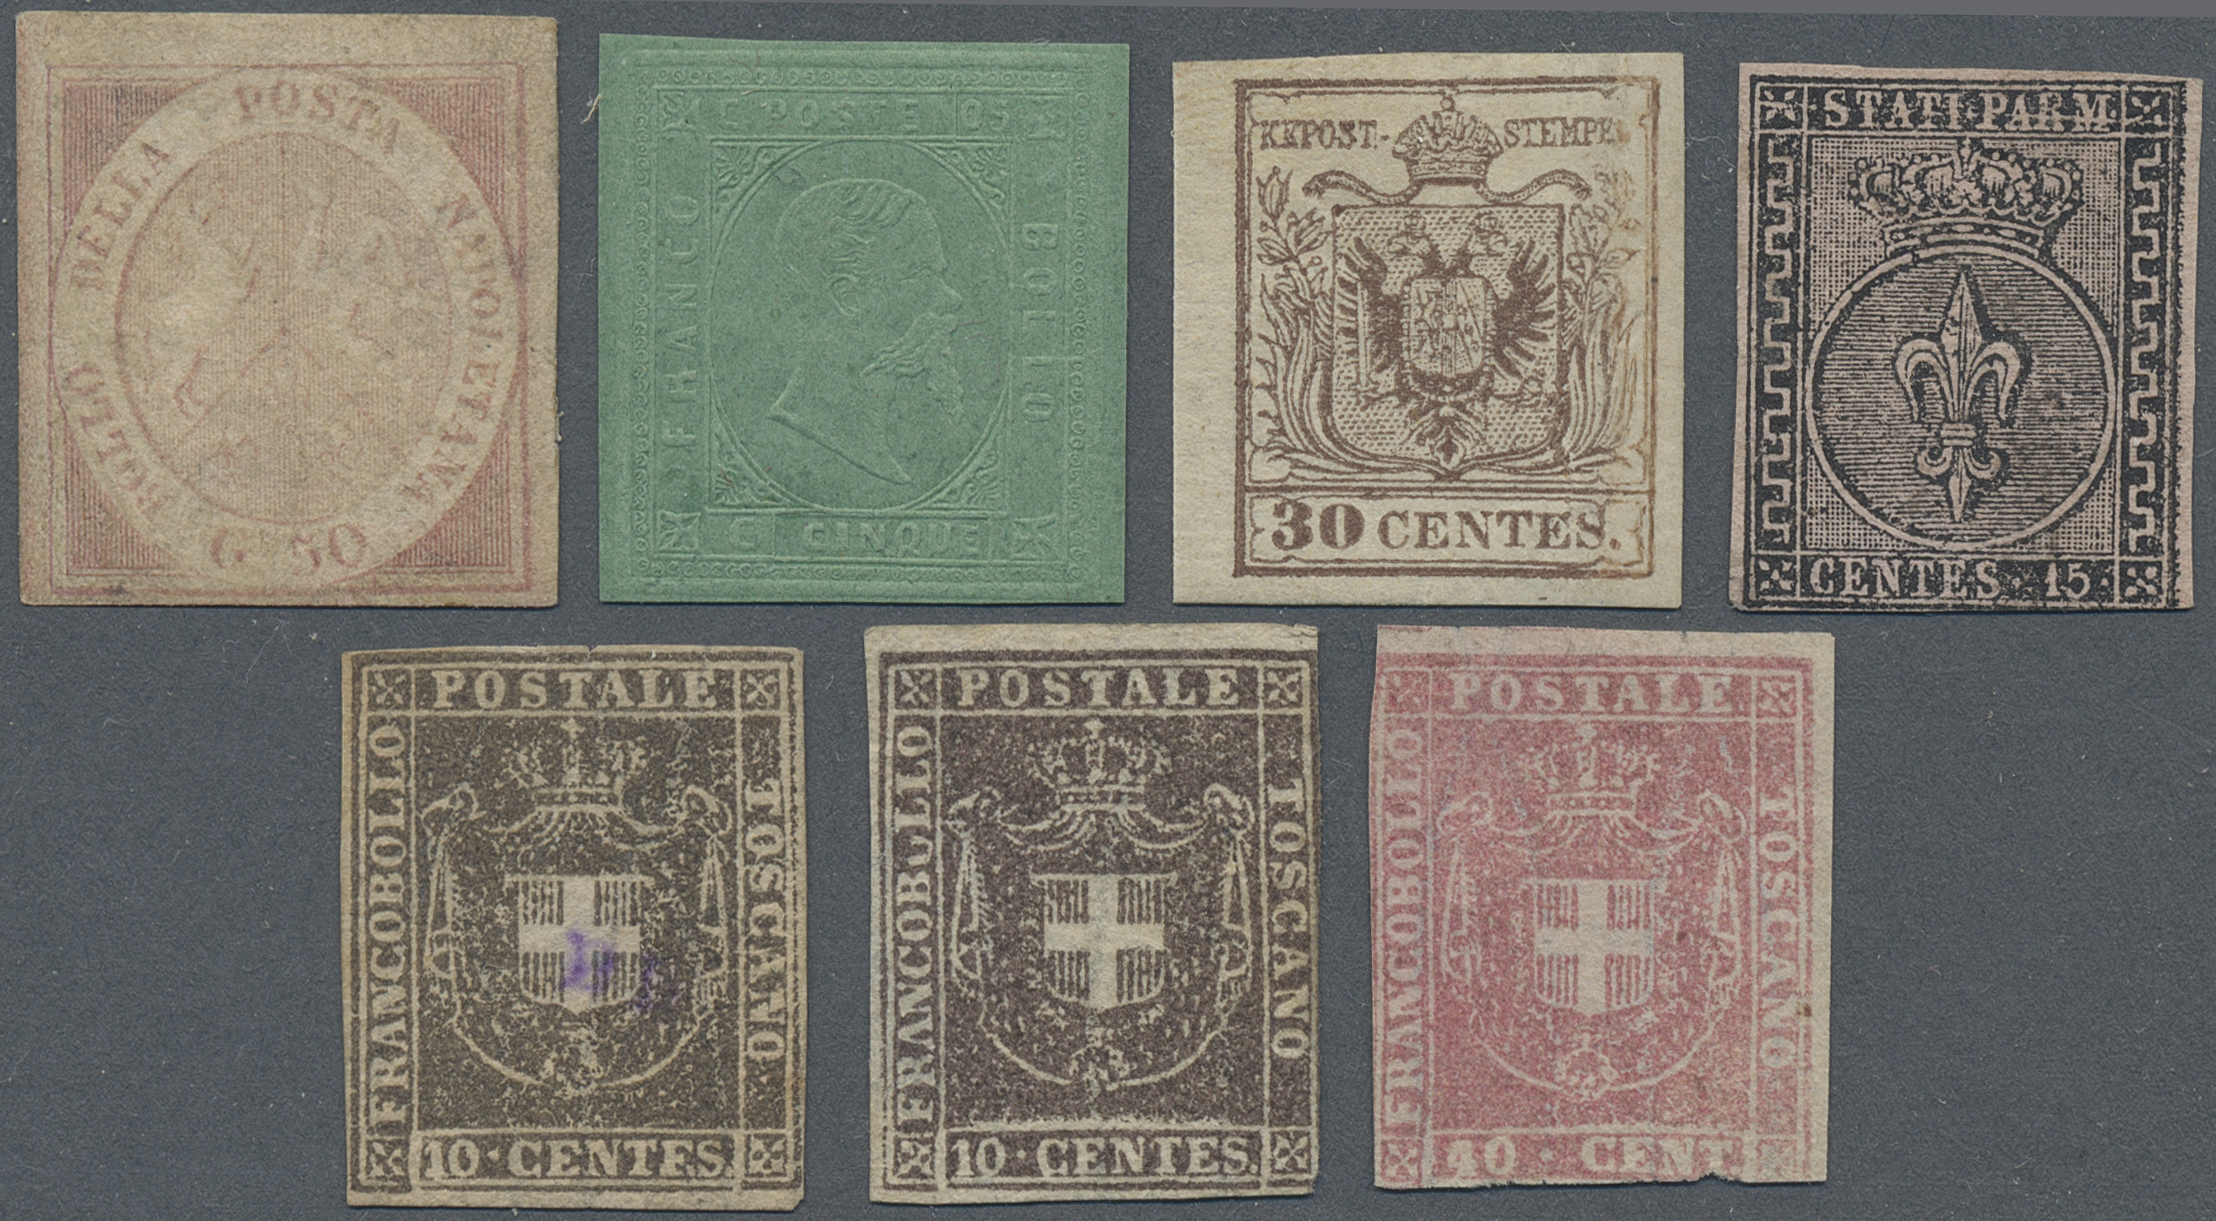 Lot 29752 - altitalien  -  Auktionshaus Christoph Gärtner GmbH & Co. KG Auction #40 Collections Germany, Wunderkartons